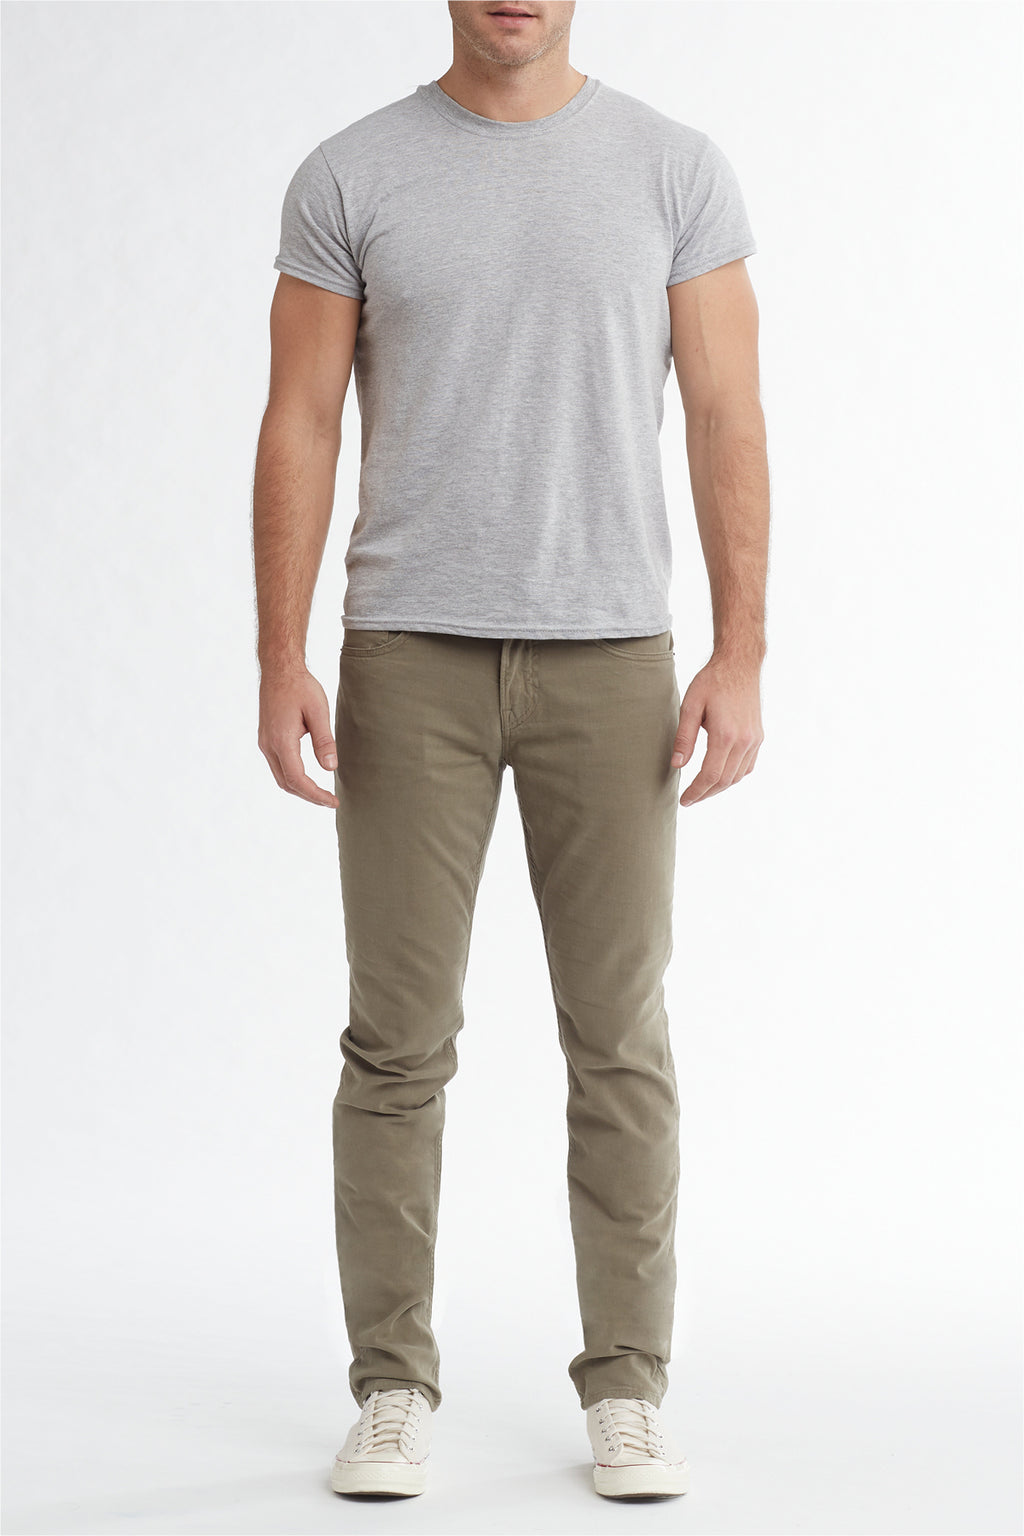 BLAKE SLIM STRAIGHT TWILL JEAN - DUSTY OLIVE - Image 1